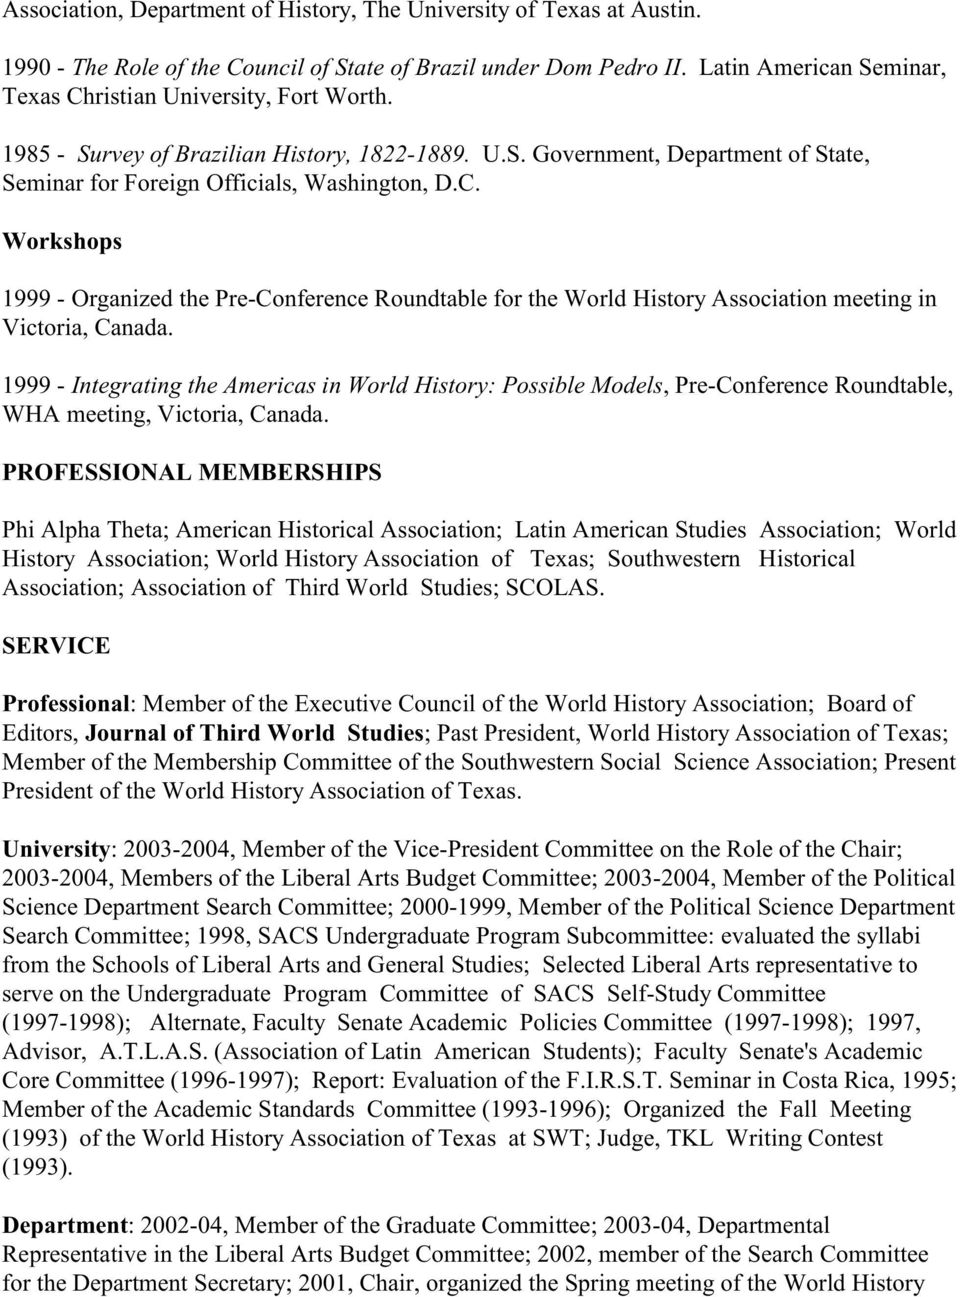 1999 - Integrating the Americas in World History: Possible Models, Pre-Conference Roundtable, WHA meeting, Victoria, Canada.